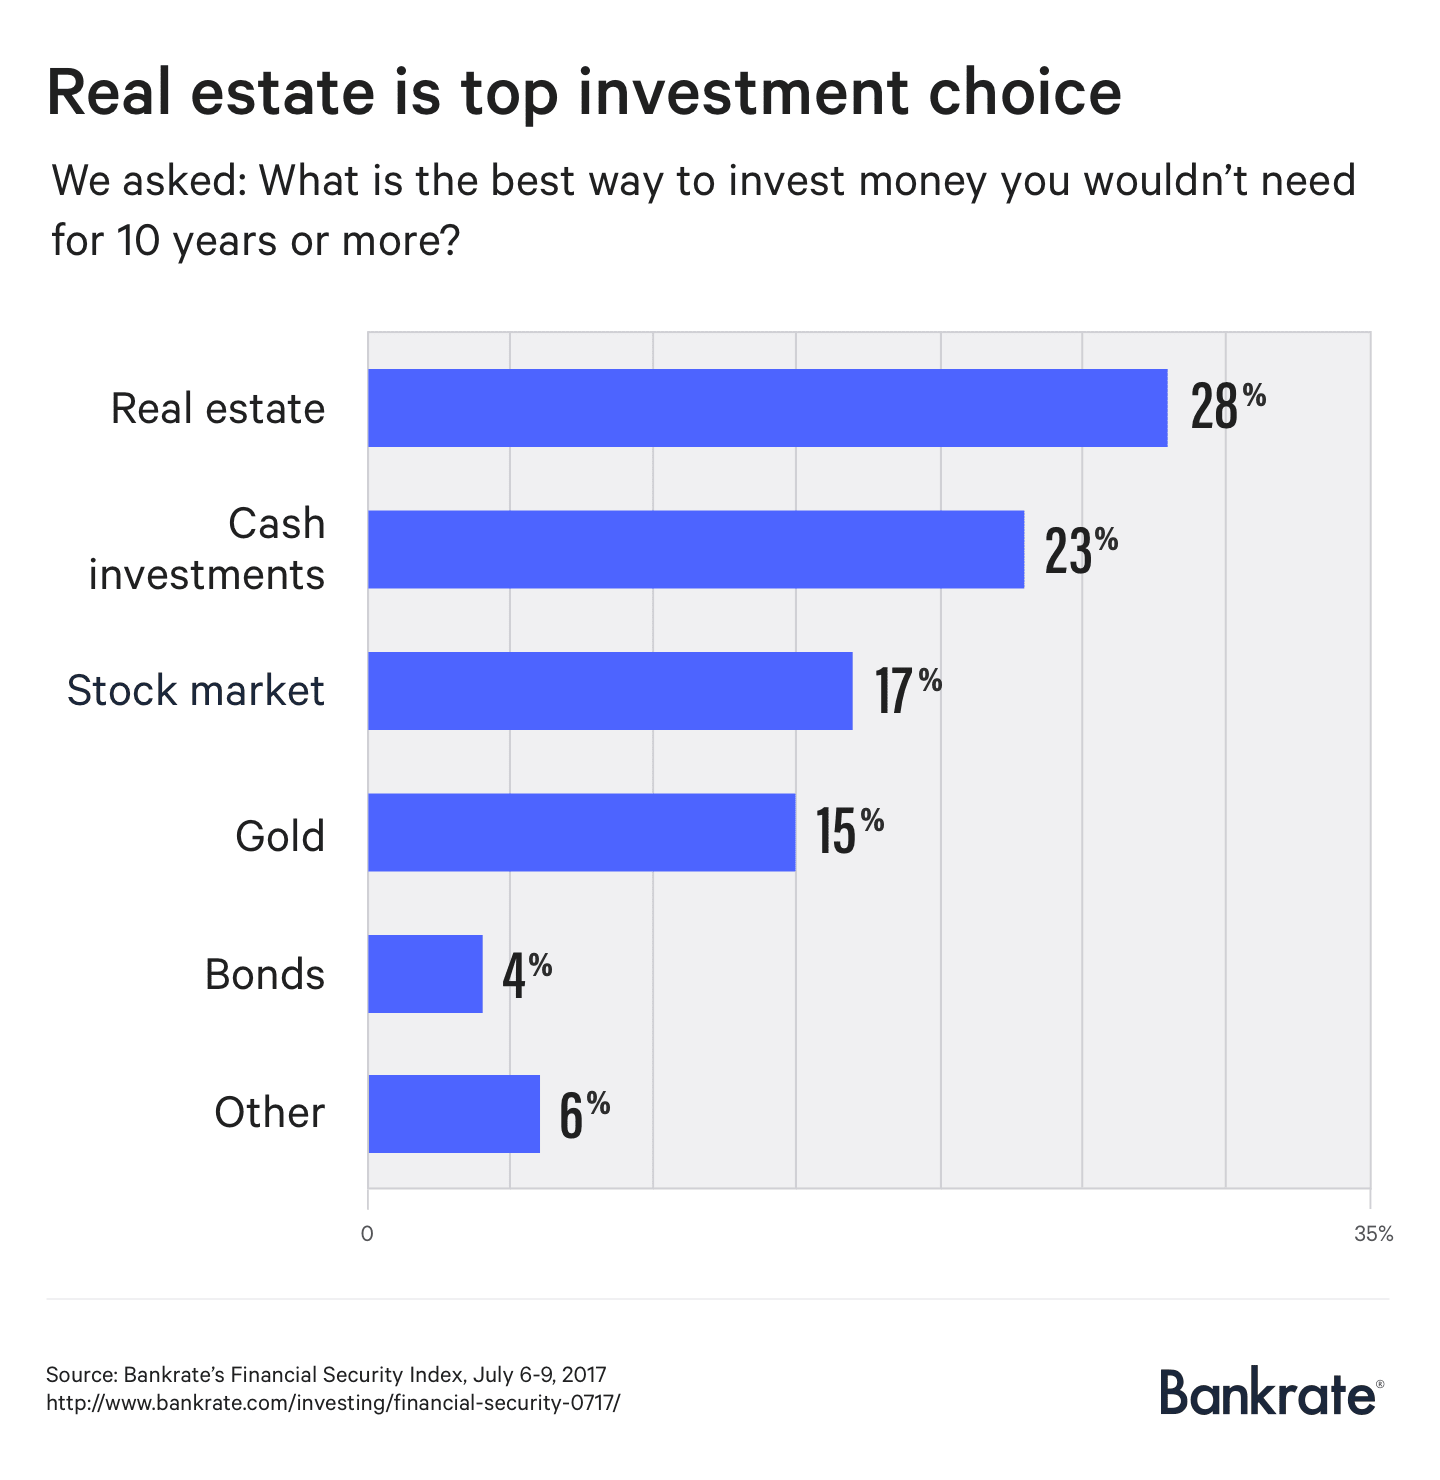 Real estate is top investment choice